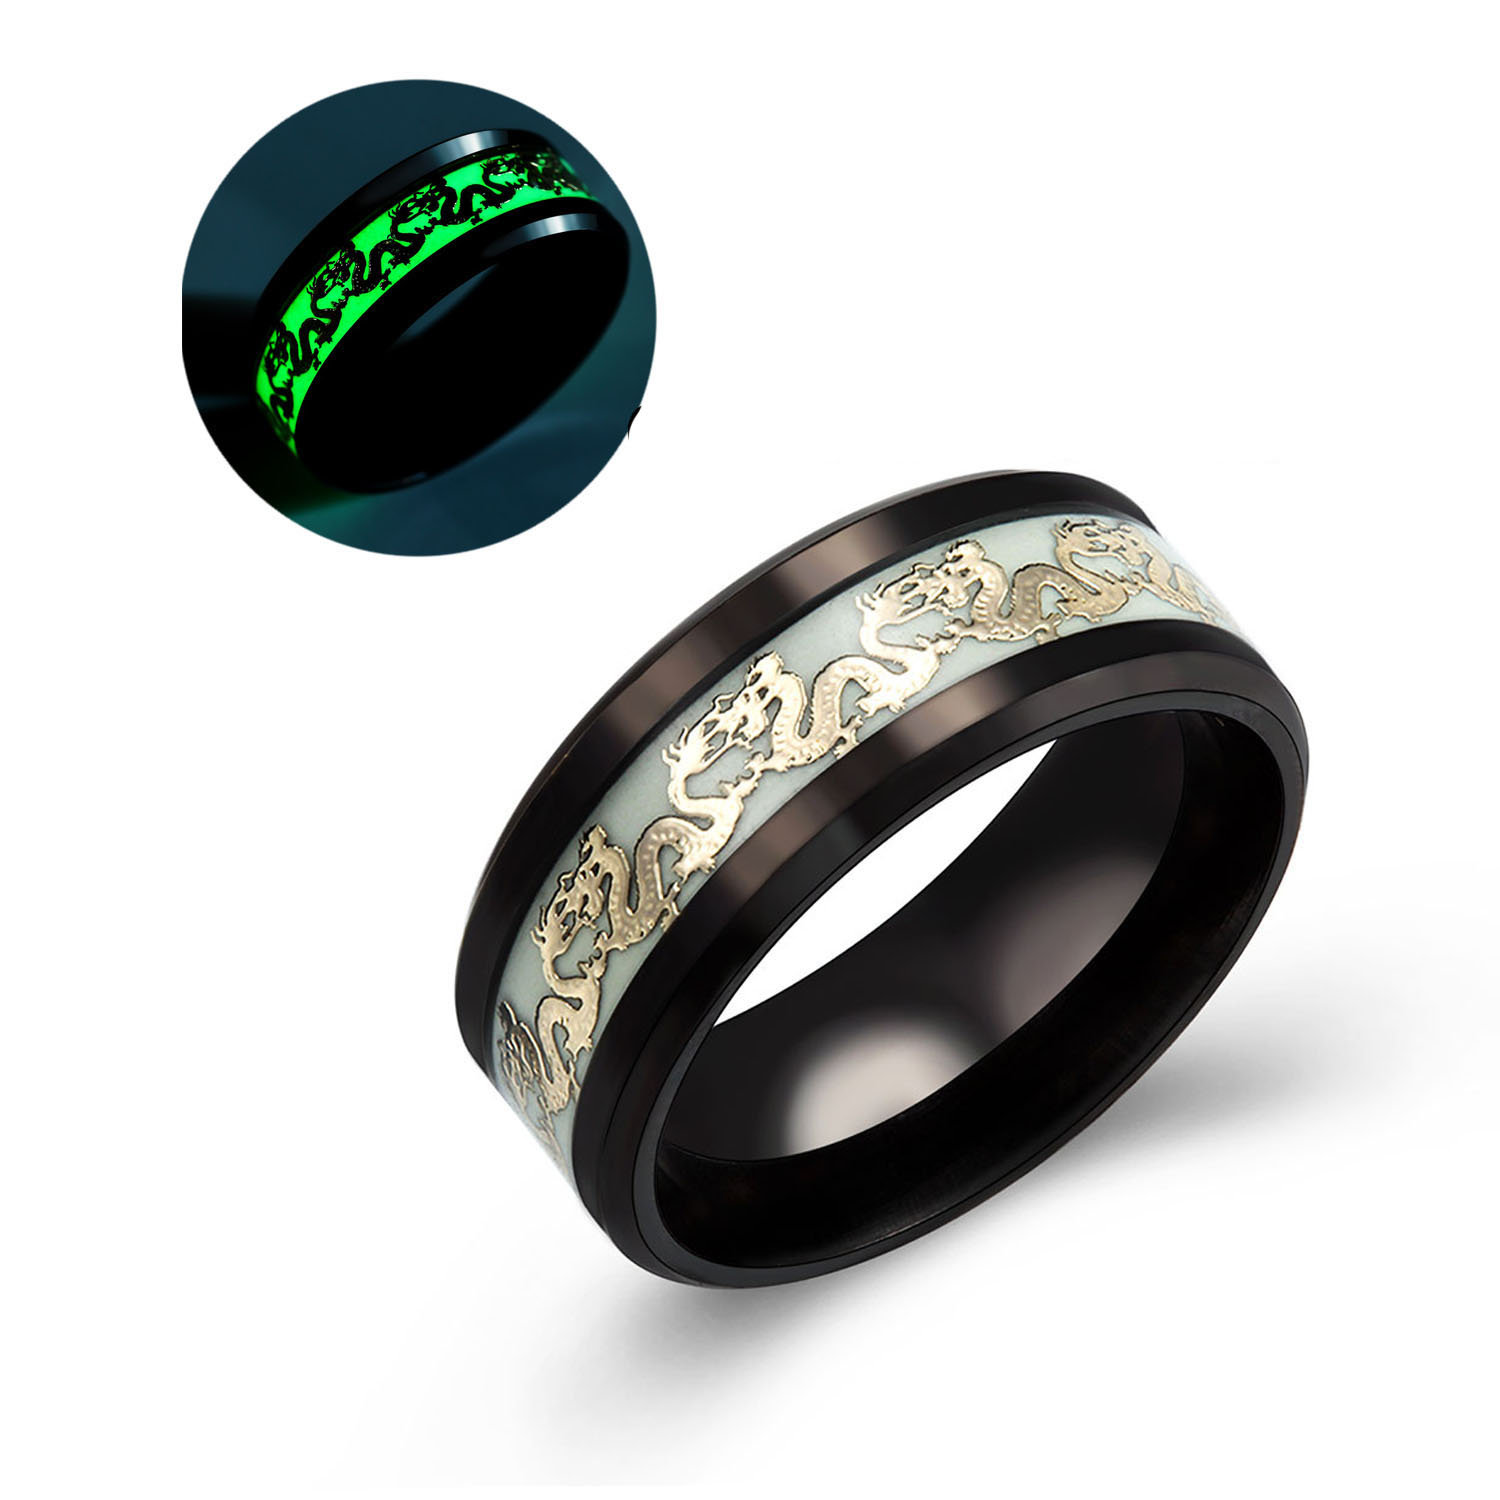 Ginger Lyne Collection Dragon Glow in The Dark Stainless Steel Black Comfort Fit Band Ring